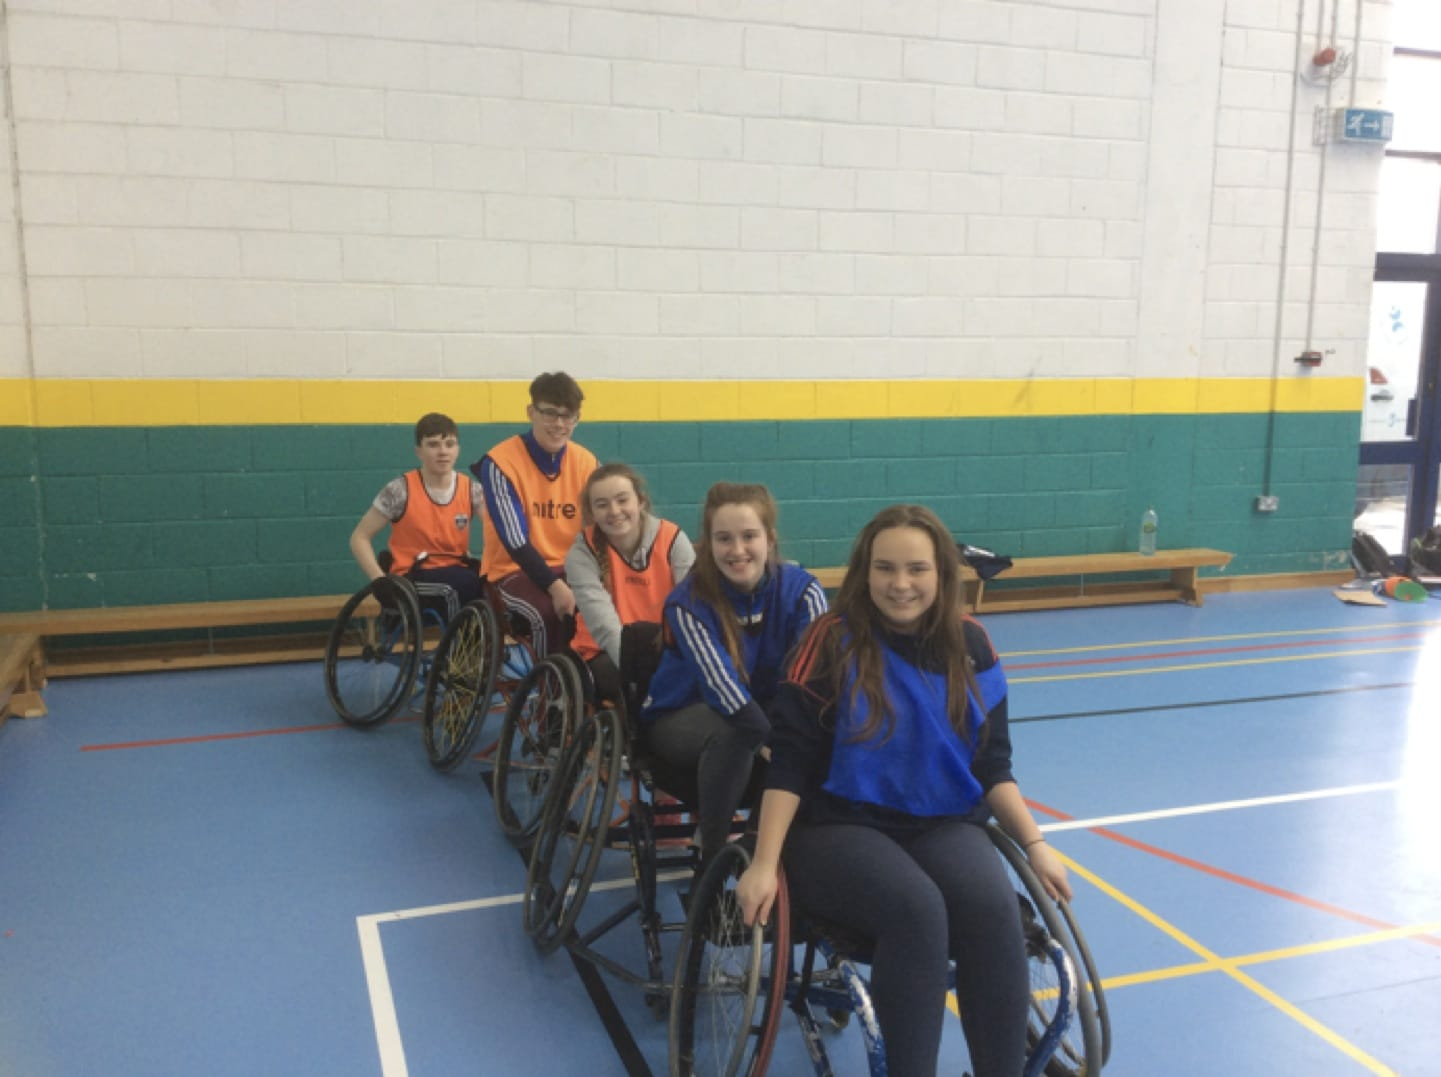 March 2017: TY students in Desmond College taking part in Wheelchair Basketball